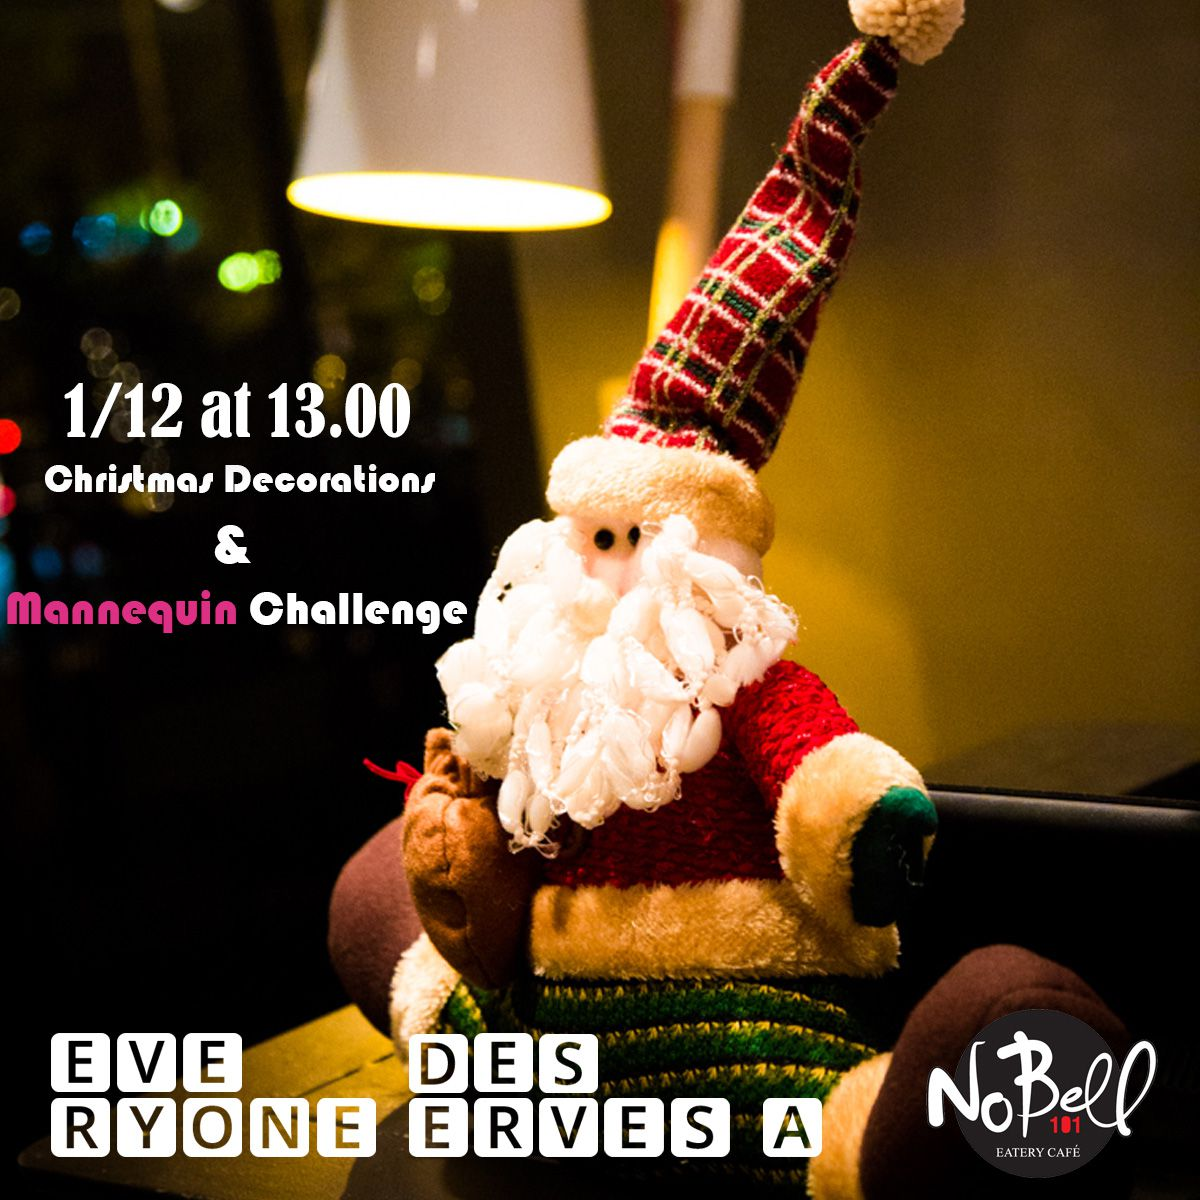 mannequin-challenge-christmas-decorations-Nobell